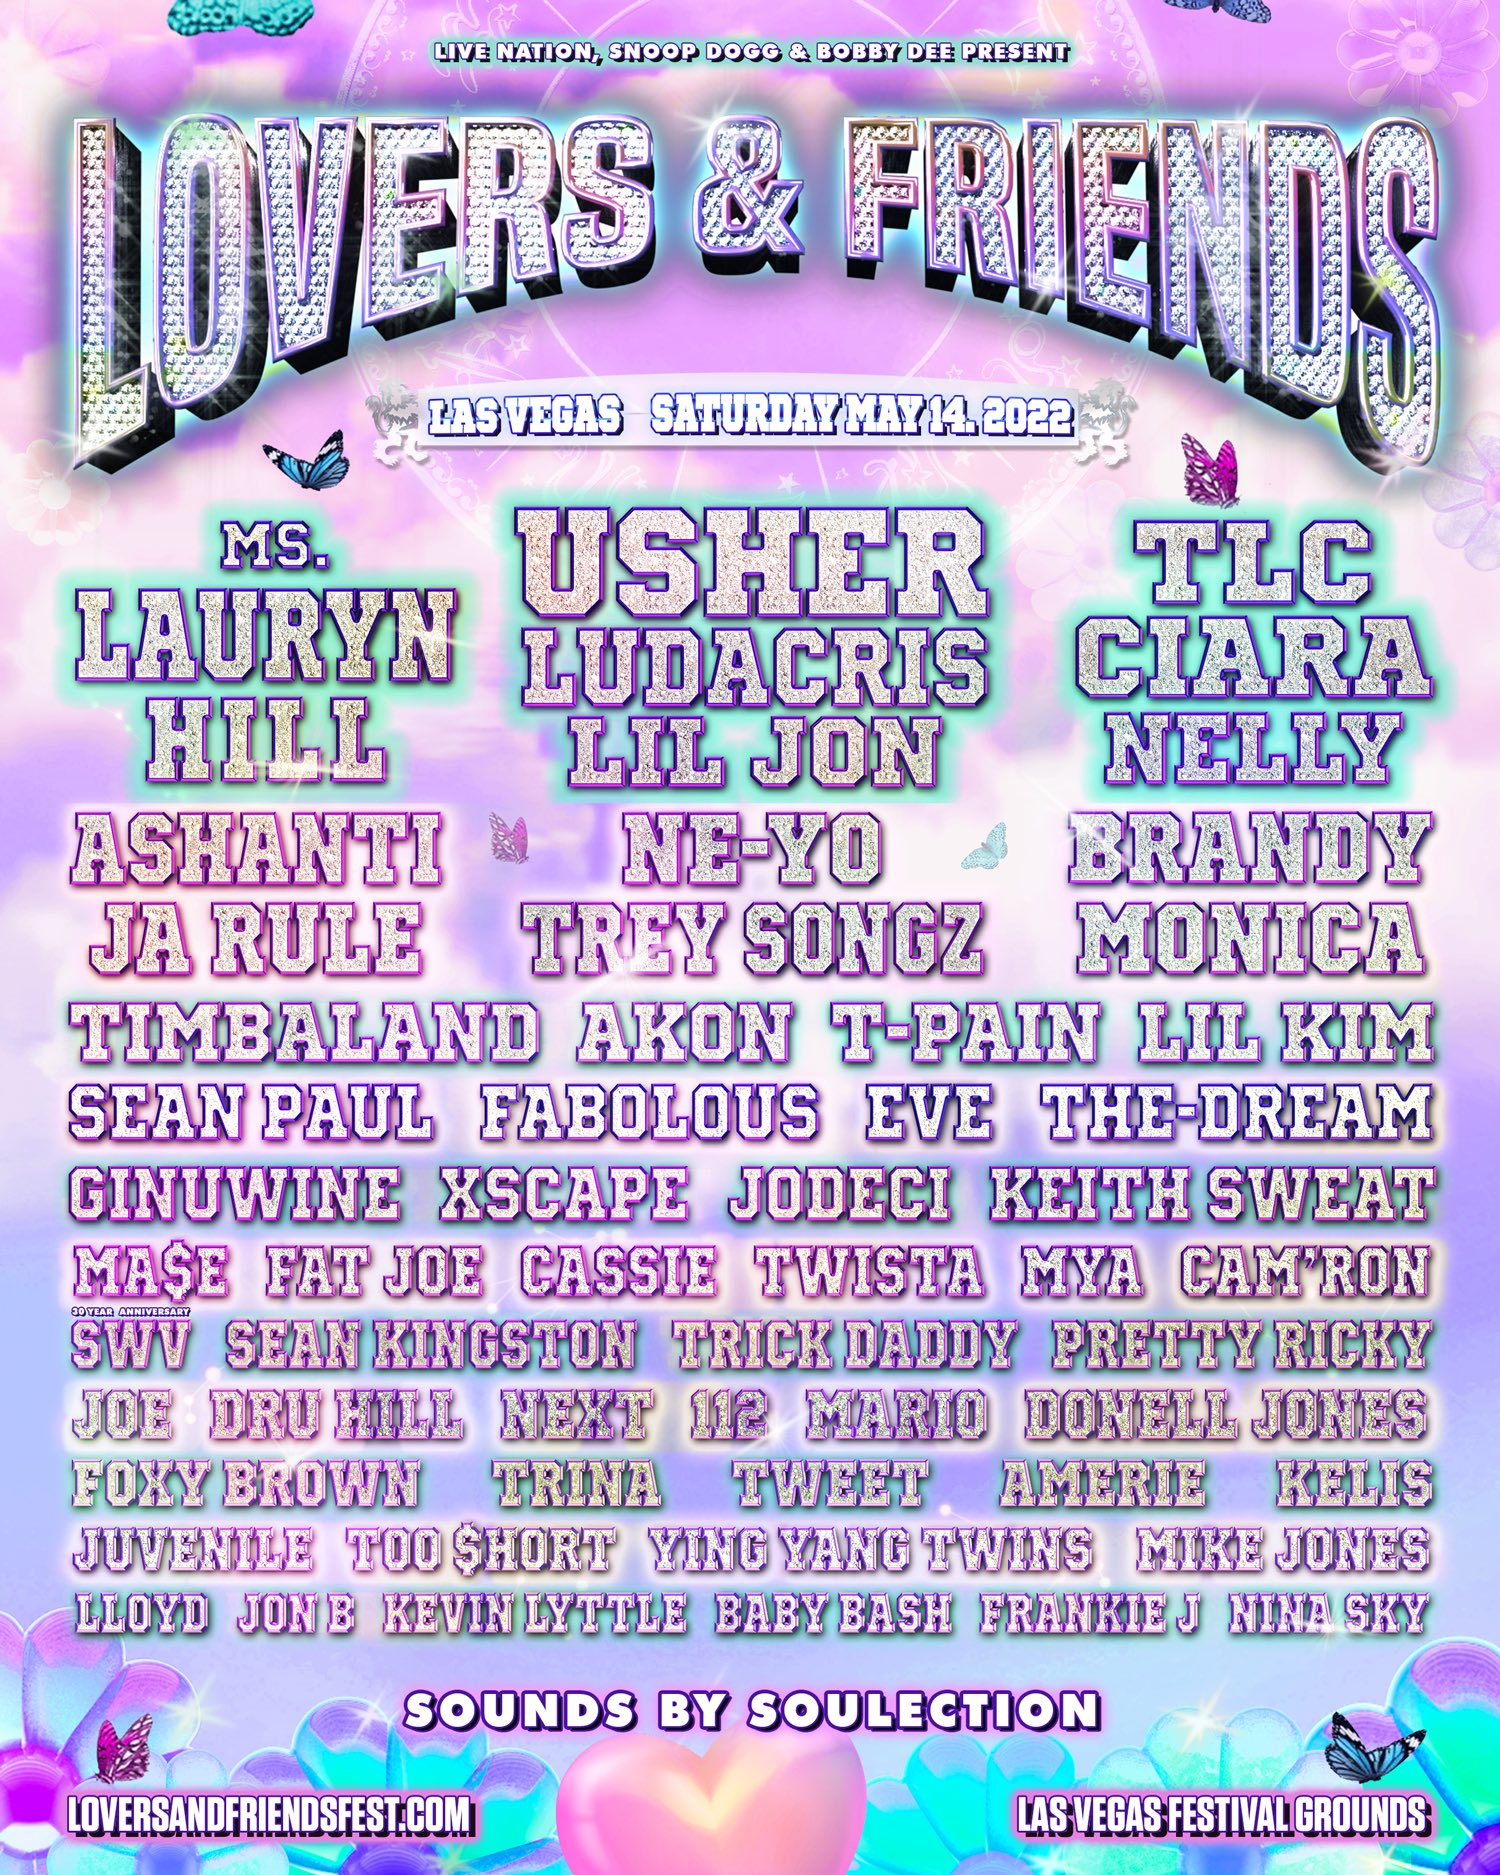 The Lovers And Friends 2022 festival will take place in Las Vegas